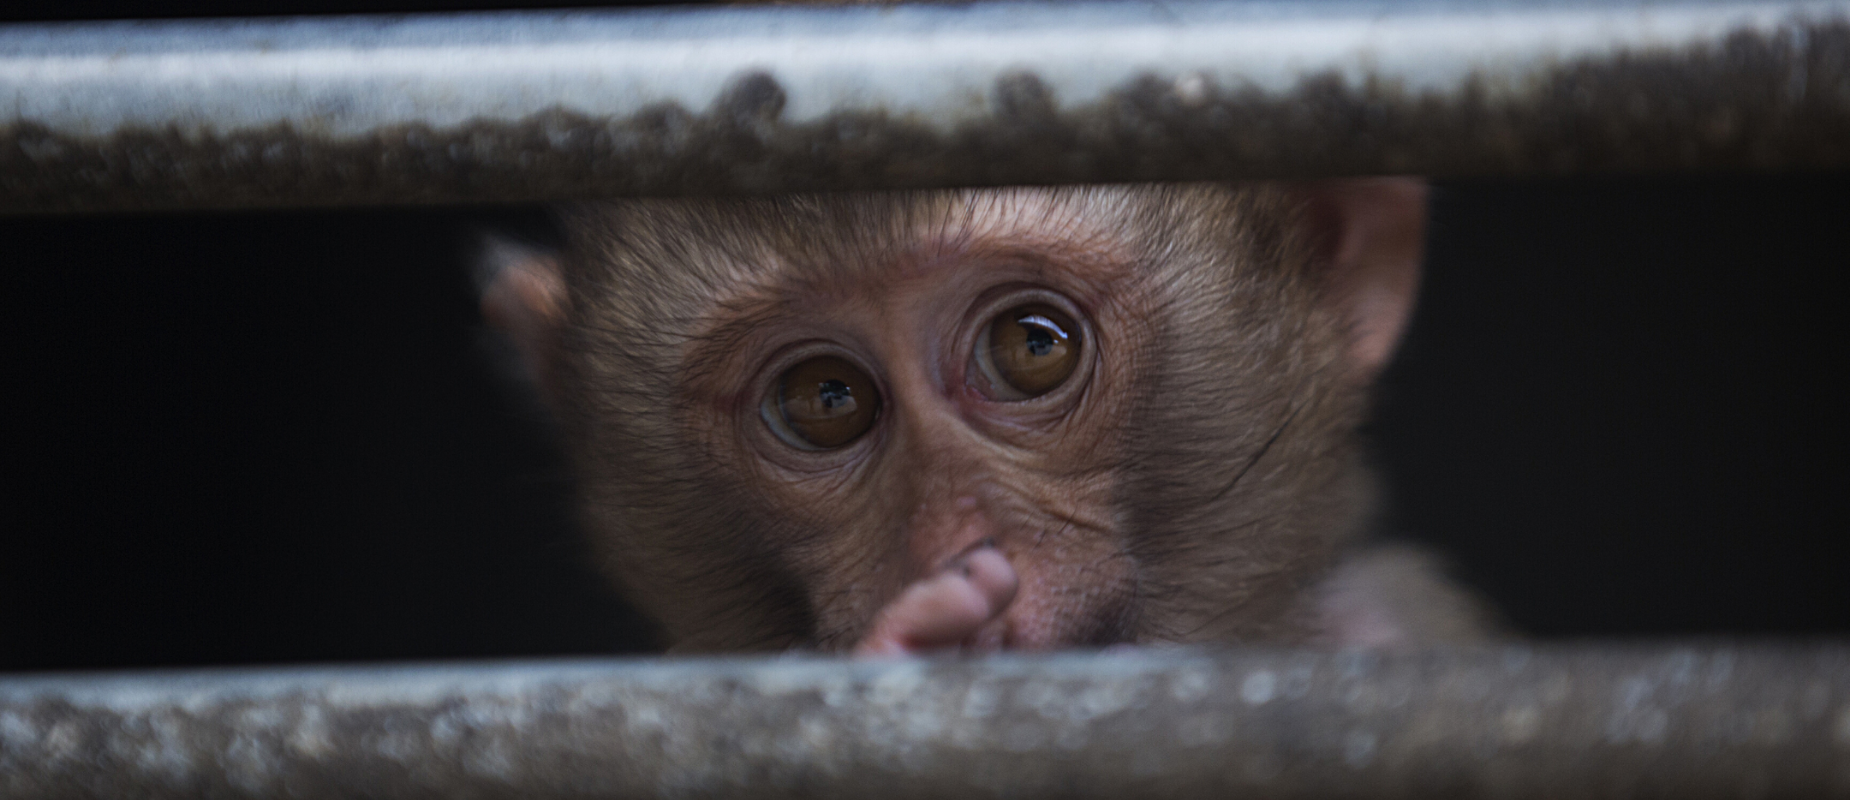 Monkey stares between the cage bars